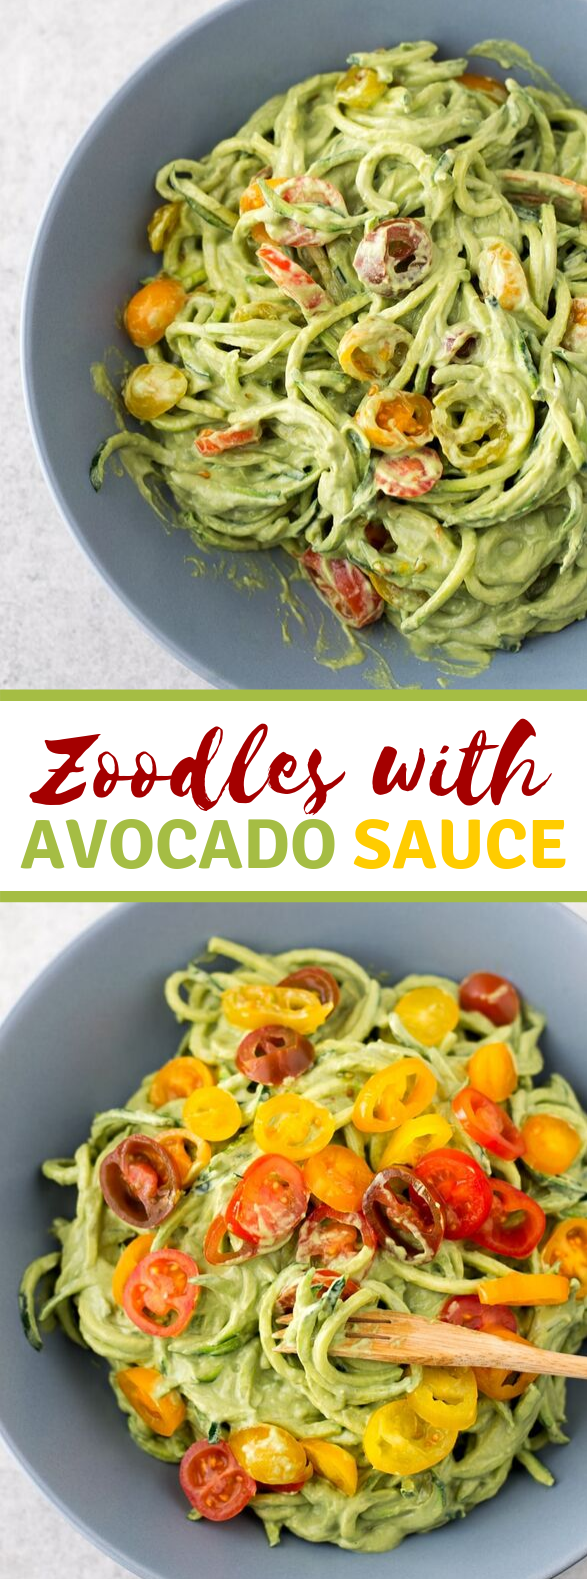 Zucchini Noodles with Avocado Sauce #lowcarb #paleo